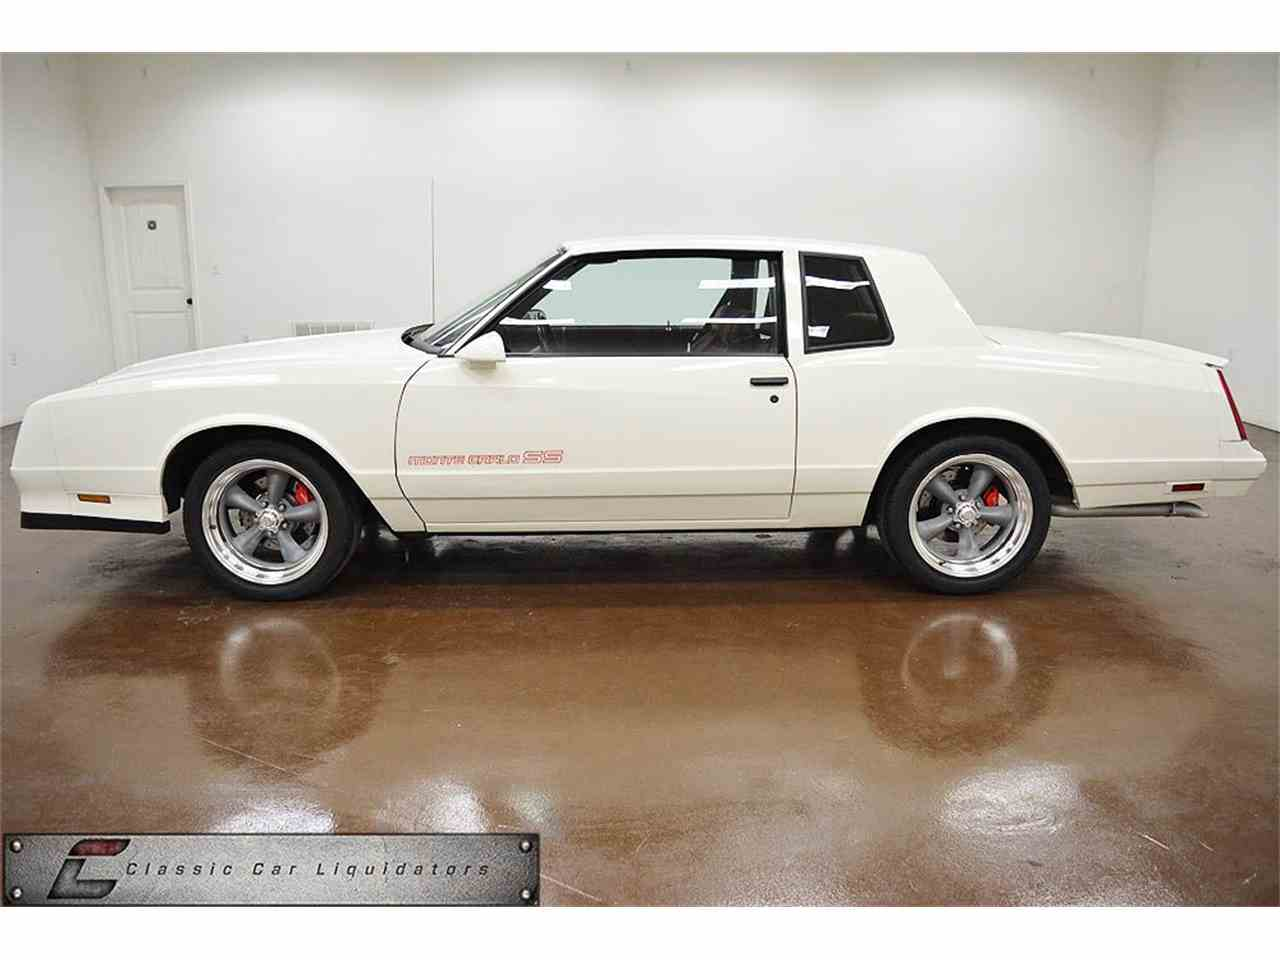 All Chevy 1988 chevrolet monte carlo ss for sale : 1988 Chevrolet Monte Carlo SS for Sale | ClassicCars.com | CC-1018471